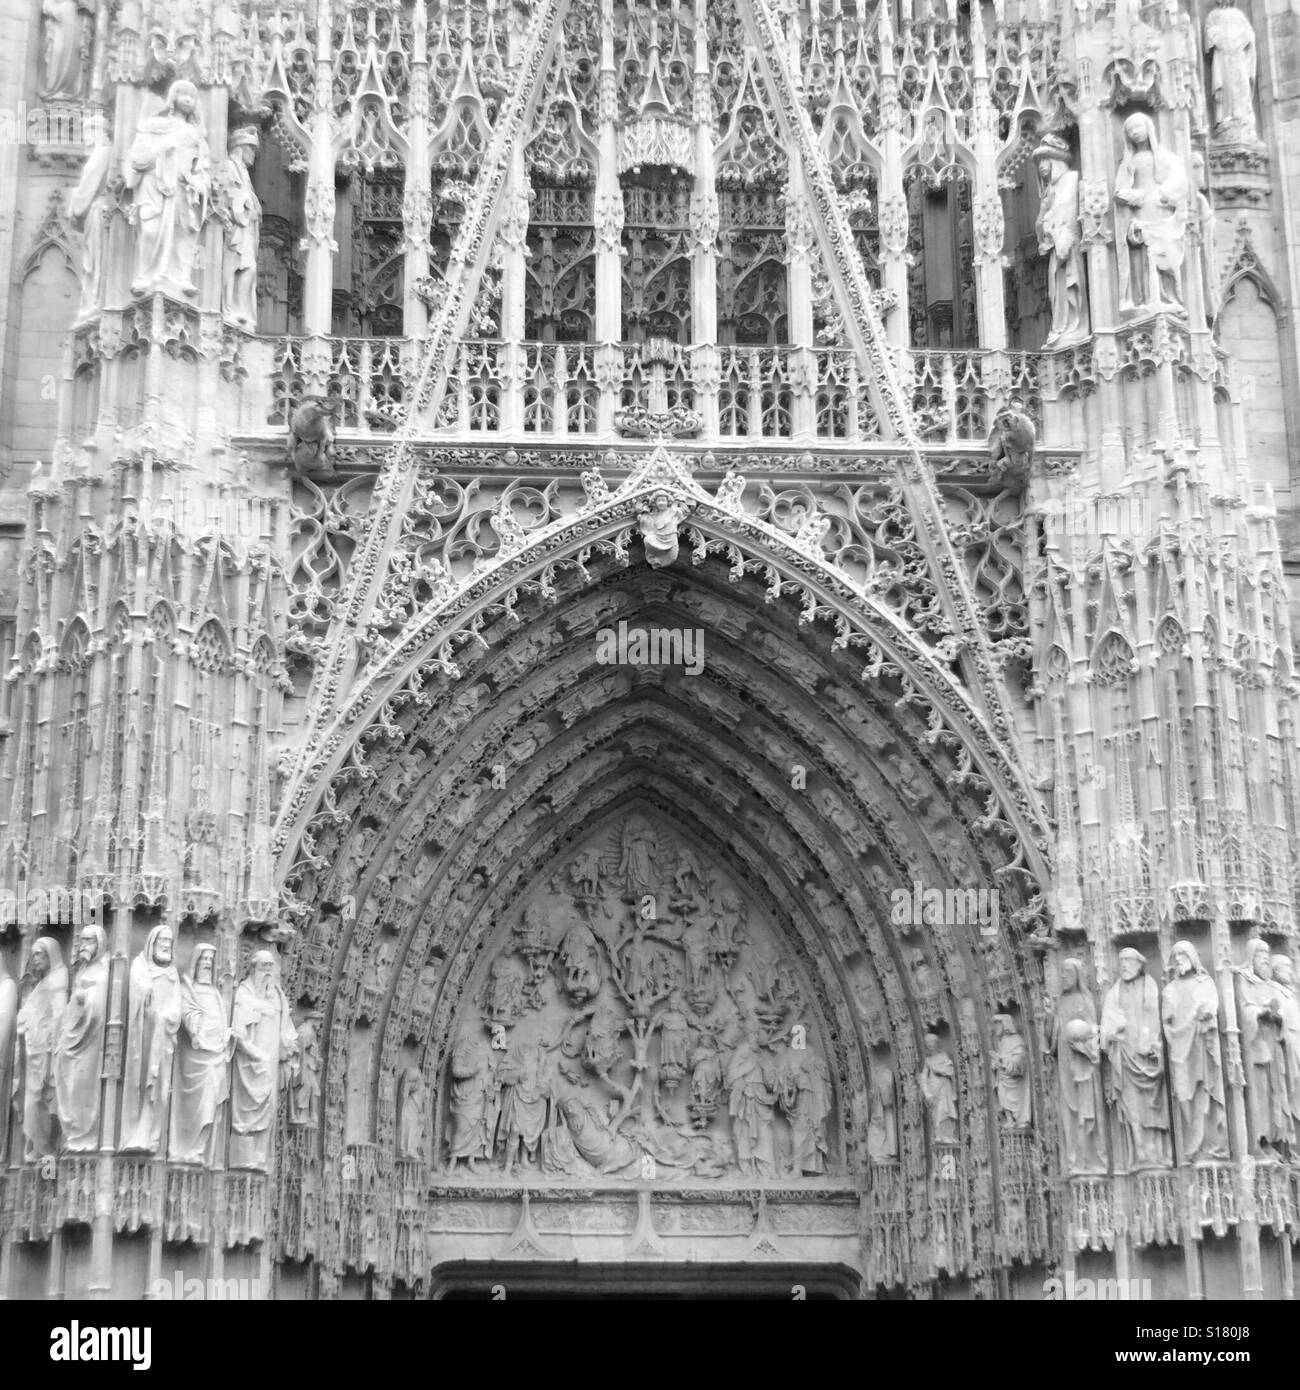 Gothic Facade Of Rouen Cathedral France Black And White